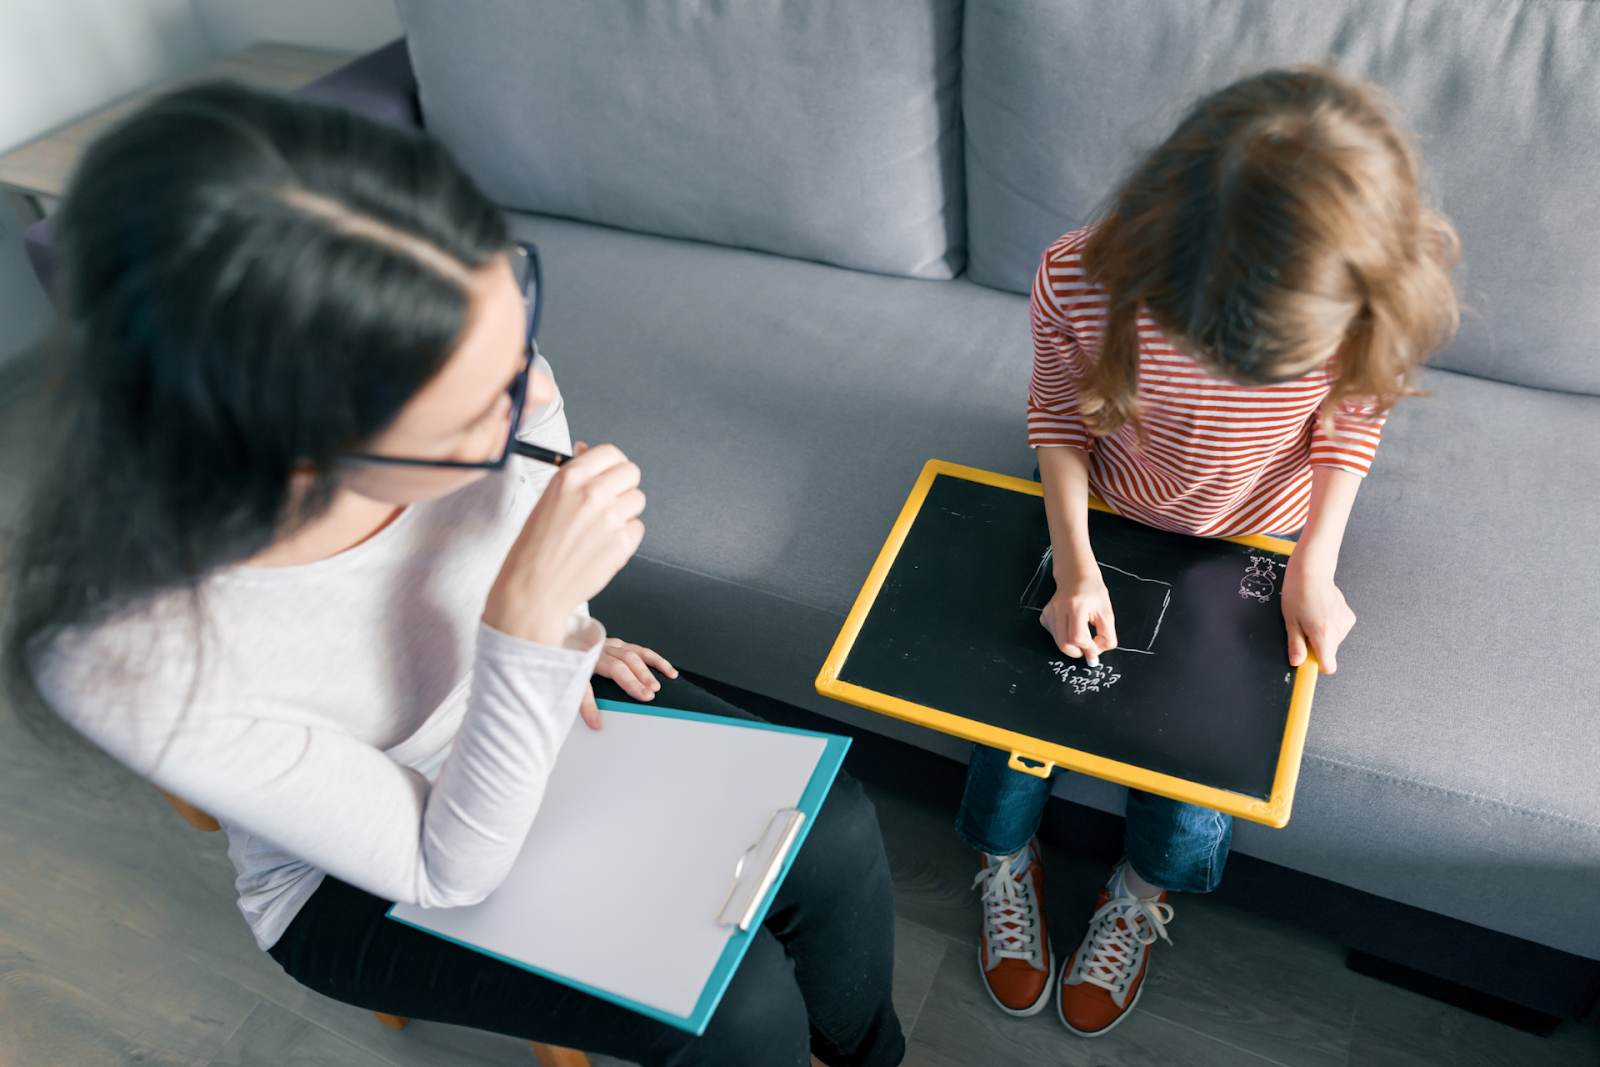 girl drawing on chalkboard next to psychologist